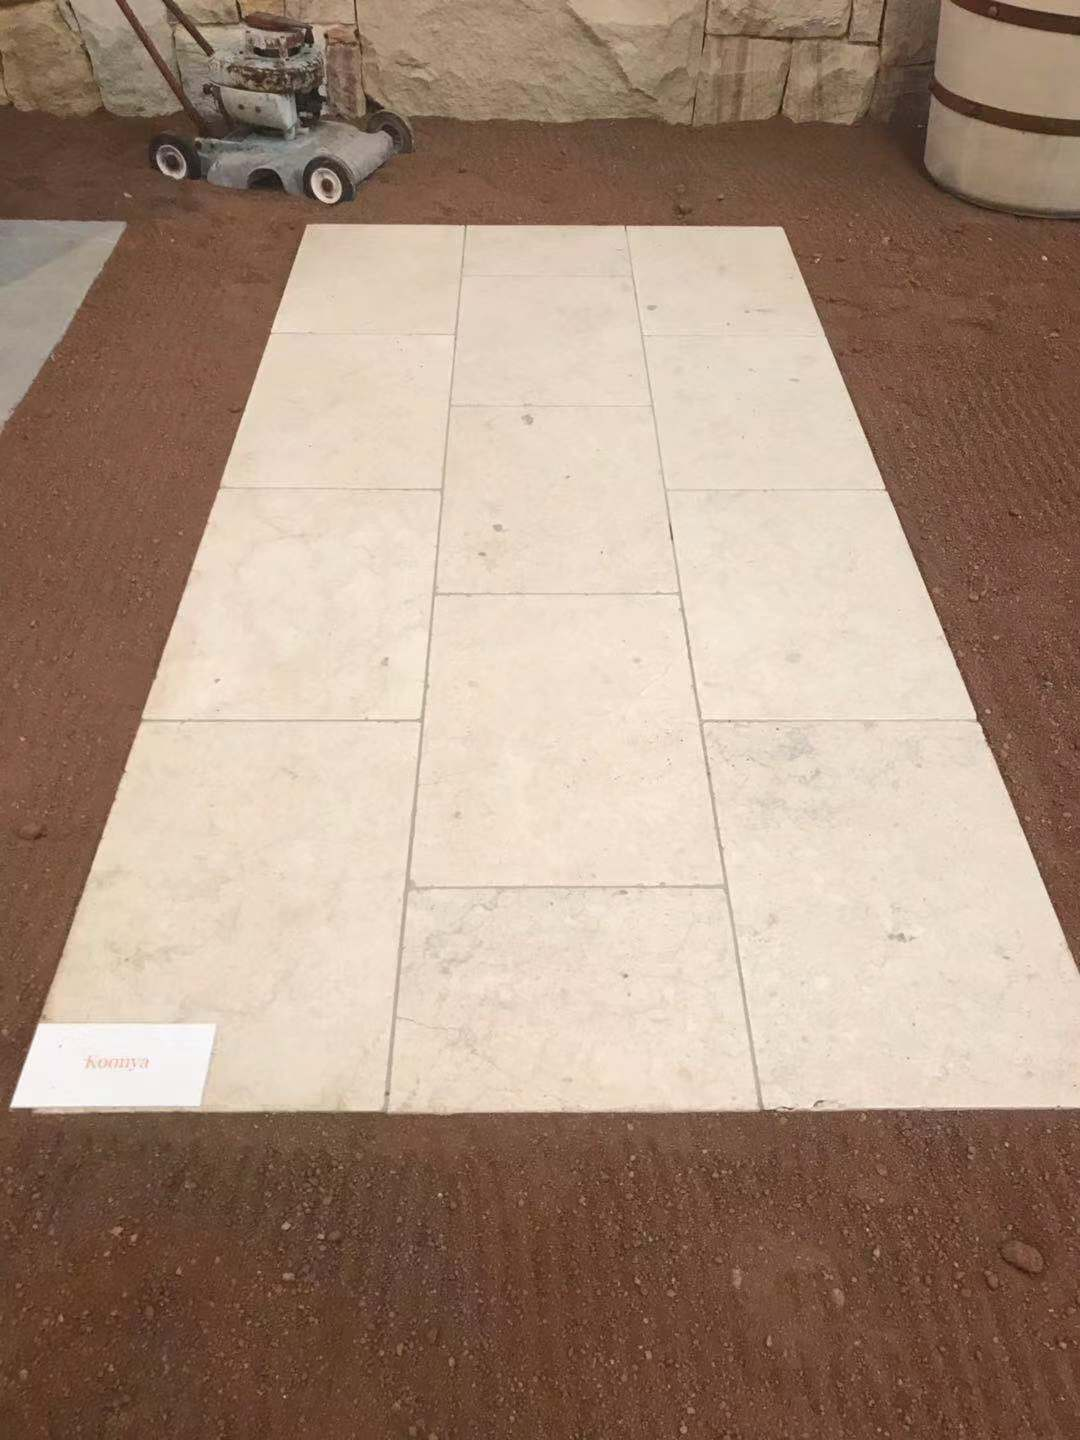 Koonya marble natural stone paving tiles and pavers displayed in Aussietecture stone supplier's Sydney showroom